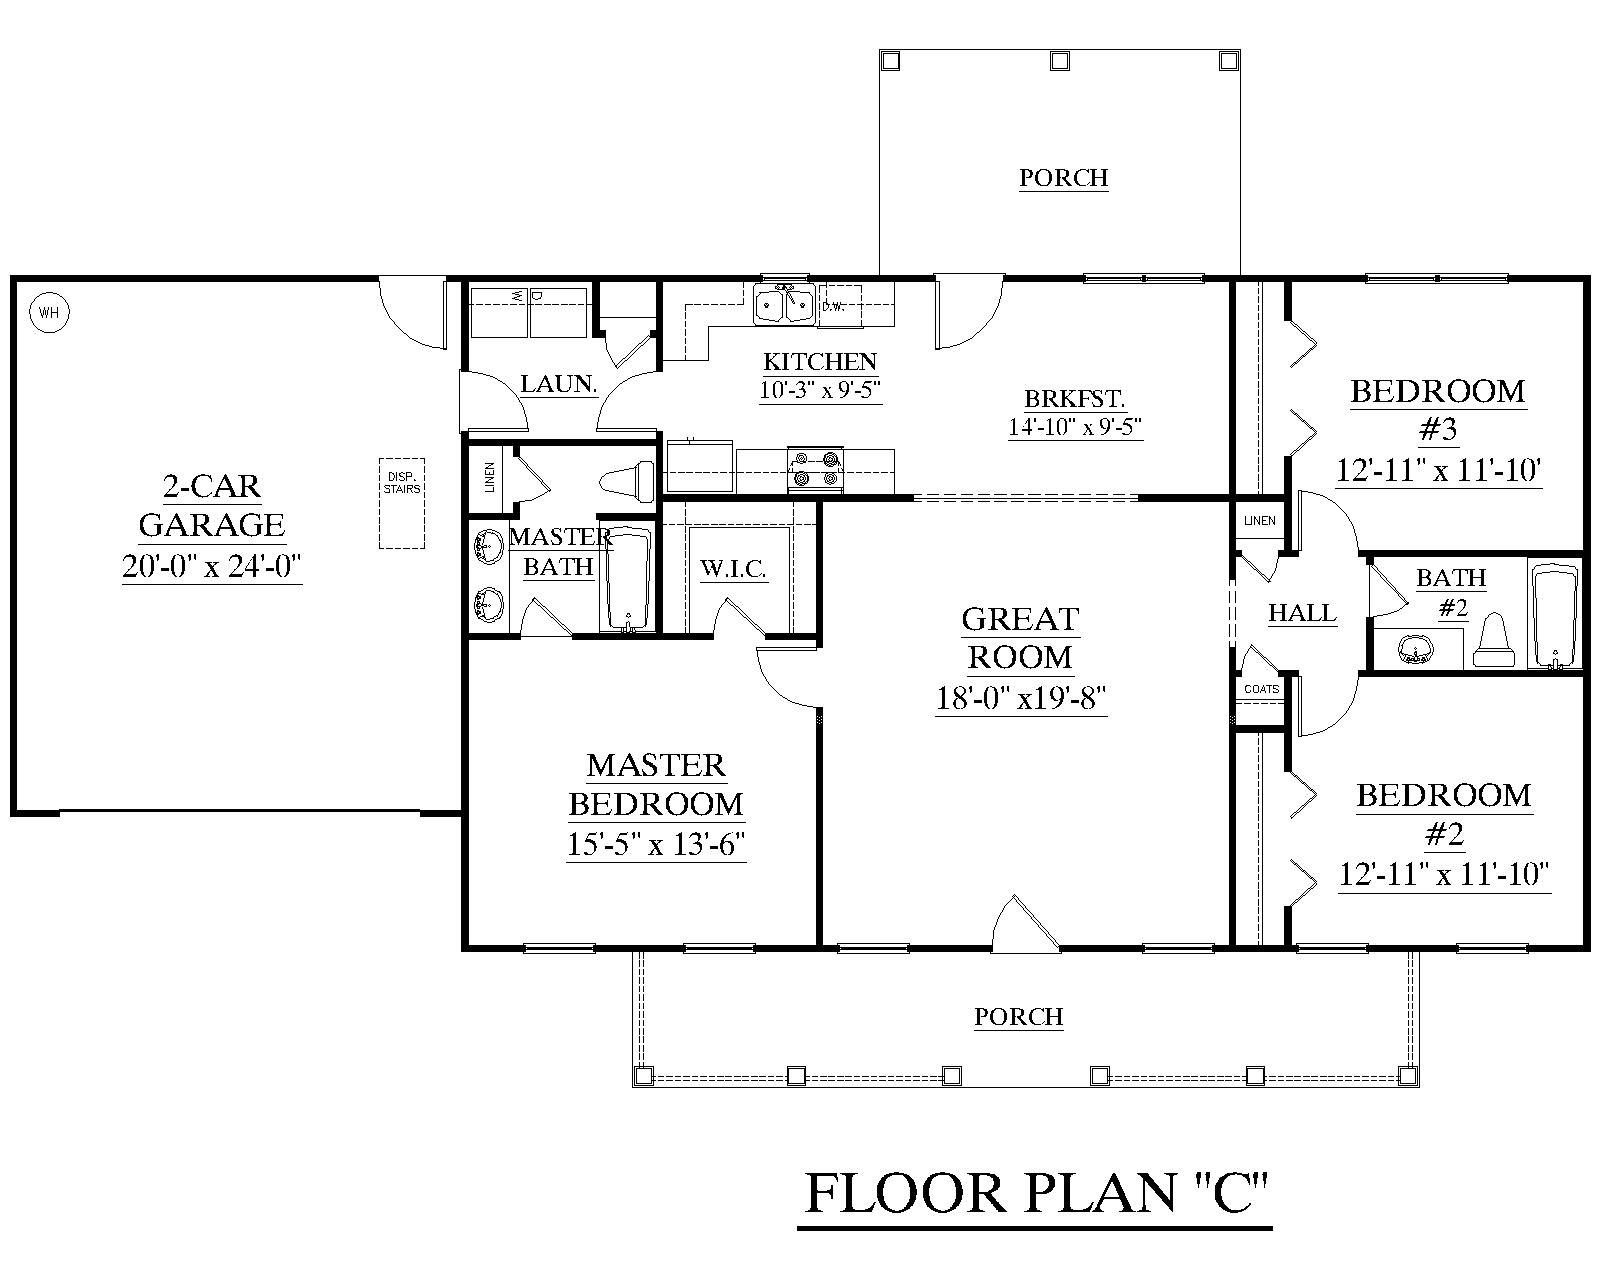 House Plan 1500 C The JAMES